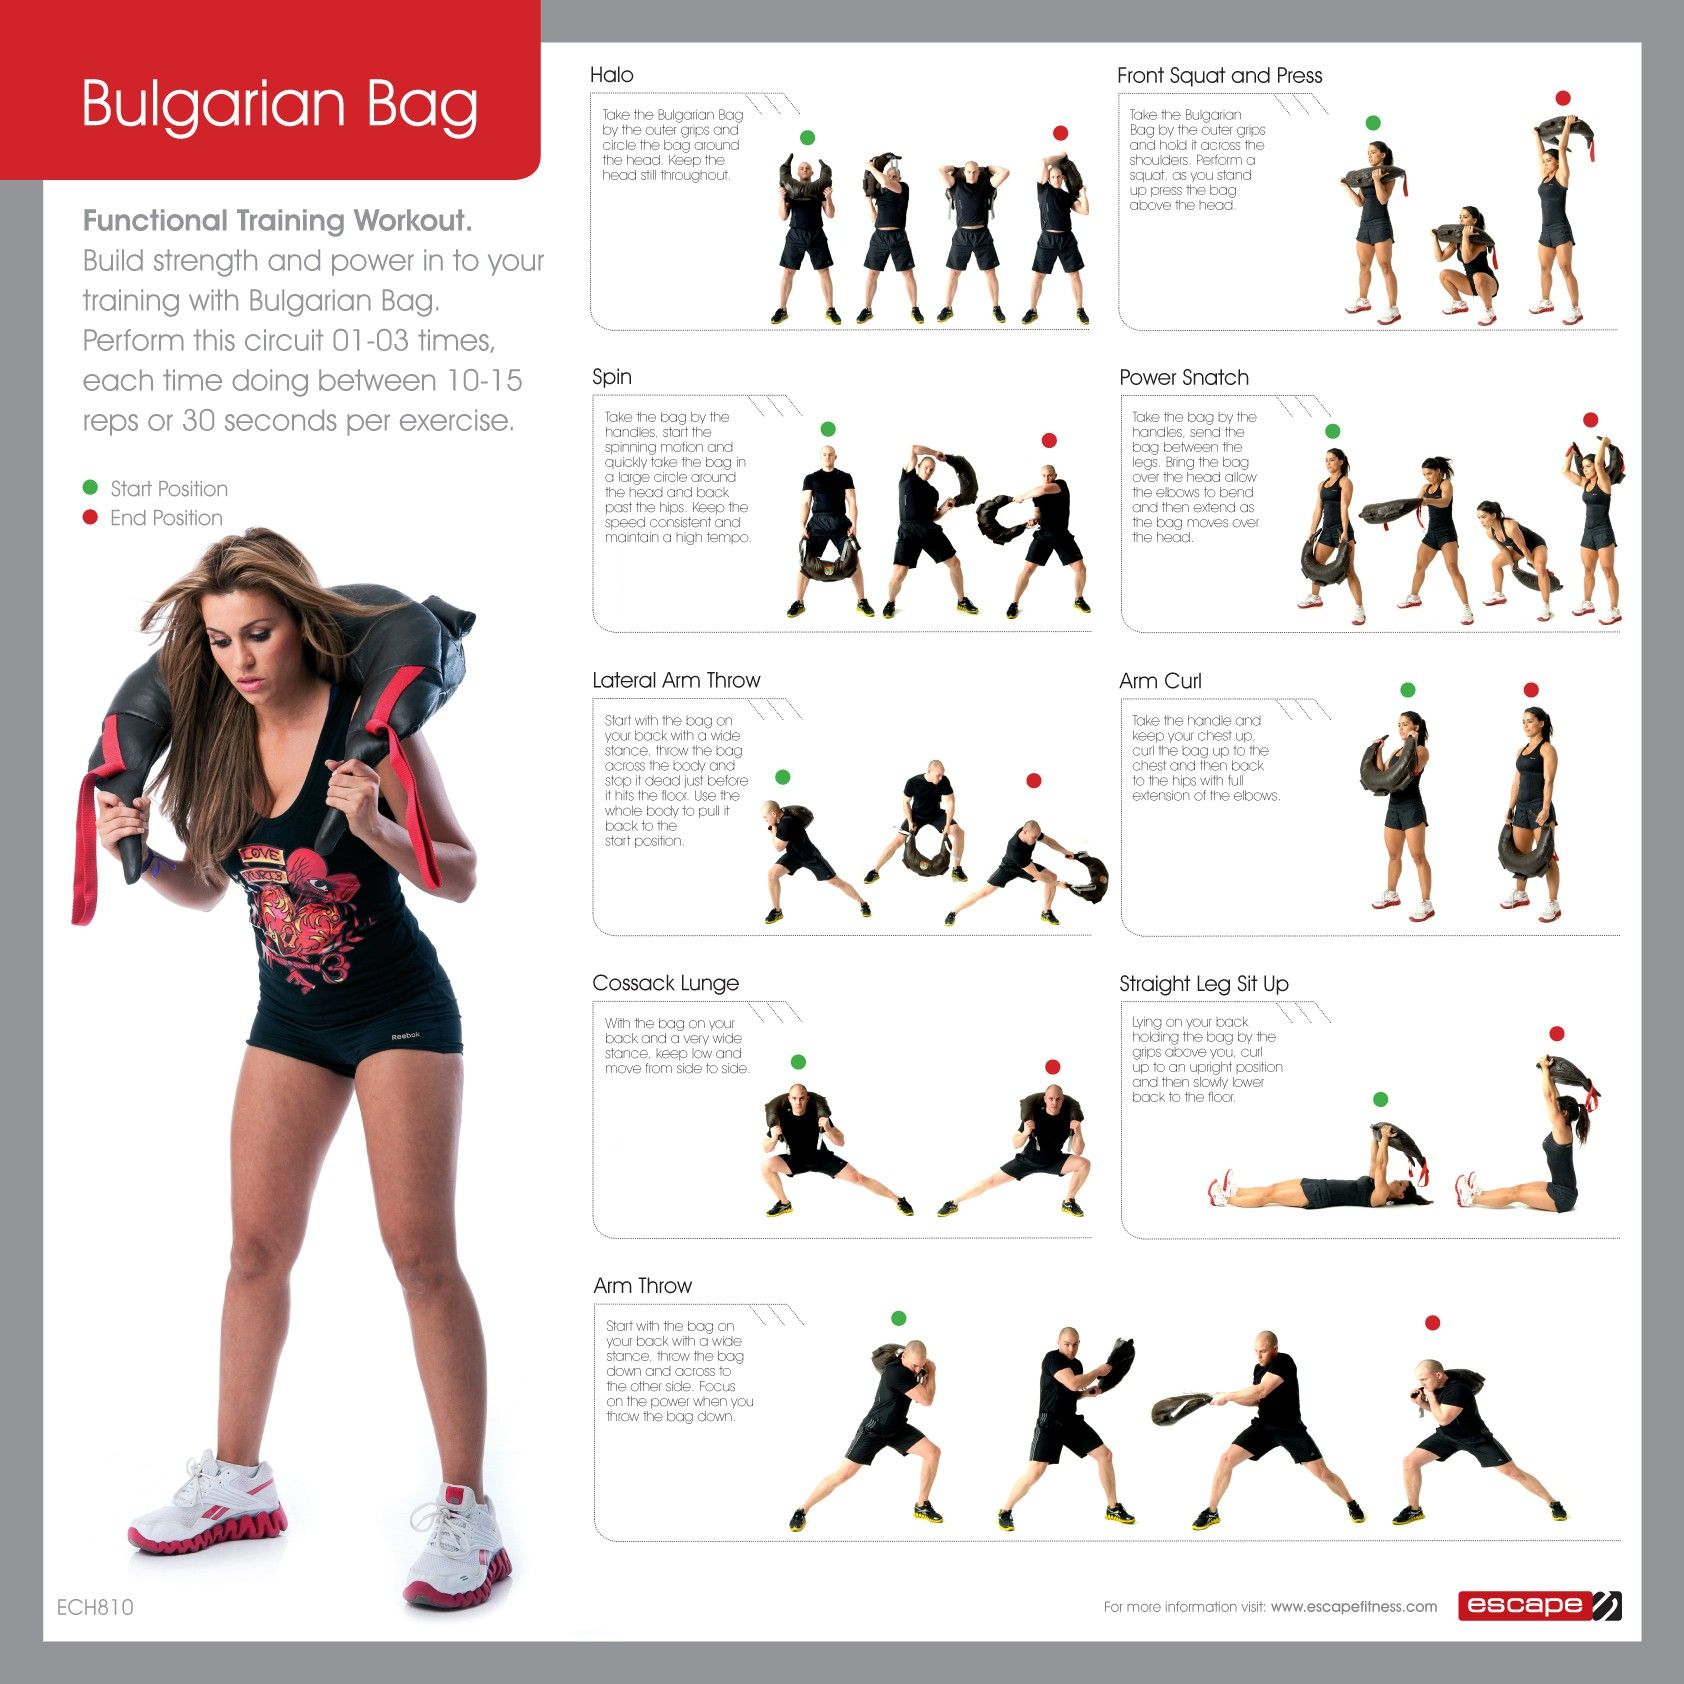 diy workout bulgarian bags exercise fit1000 boots sandbag